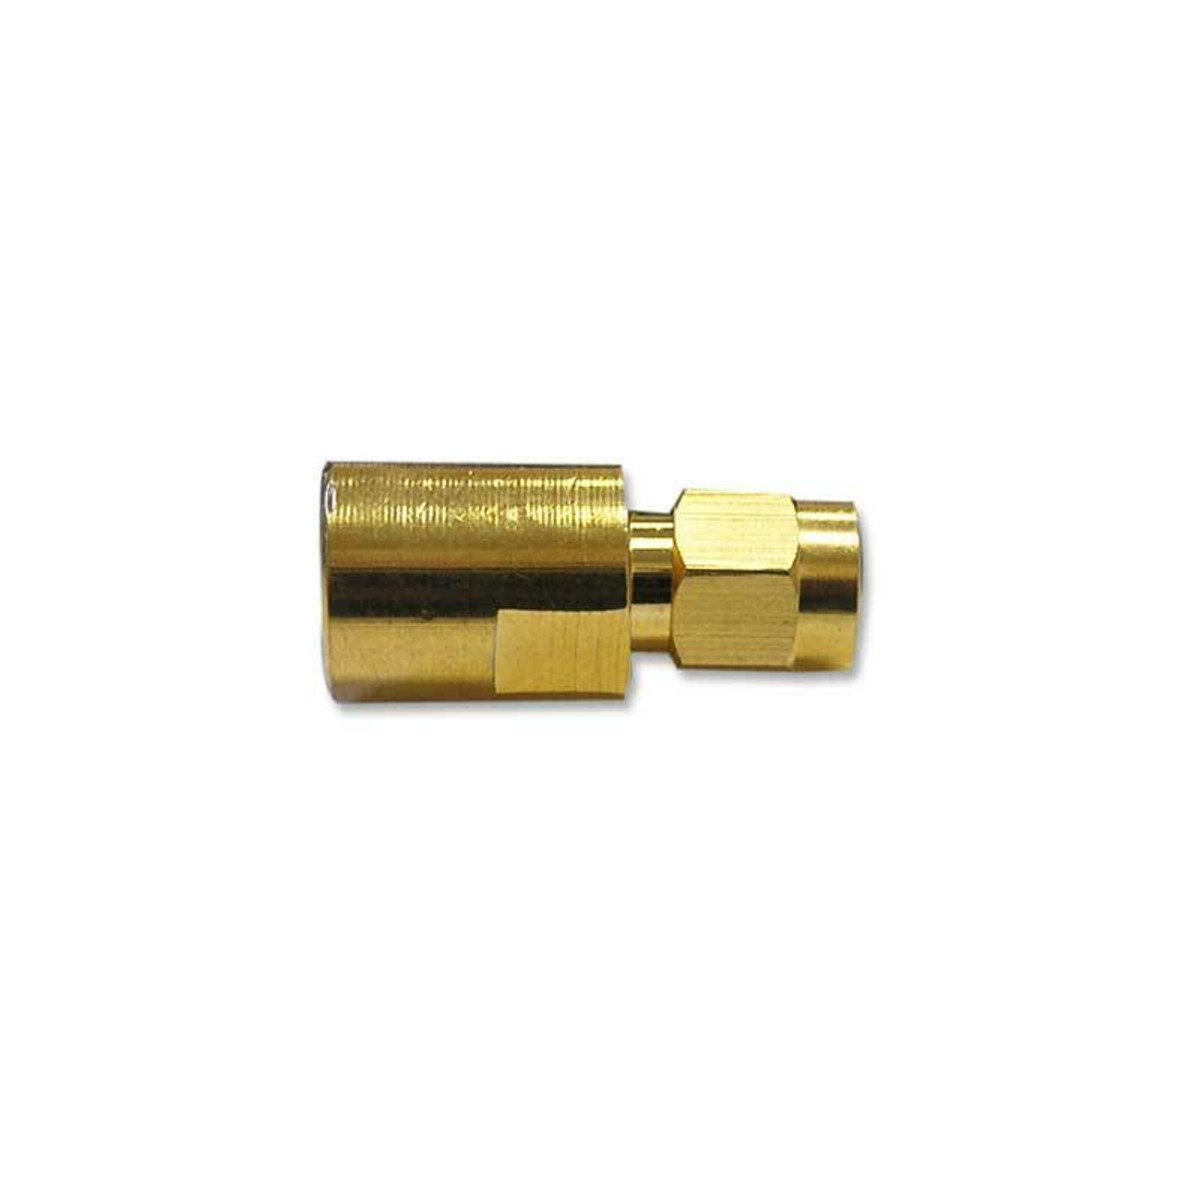 SureCall SureCall SMA-Male to FME-Male Connector or SC-CN-06